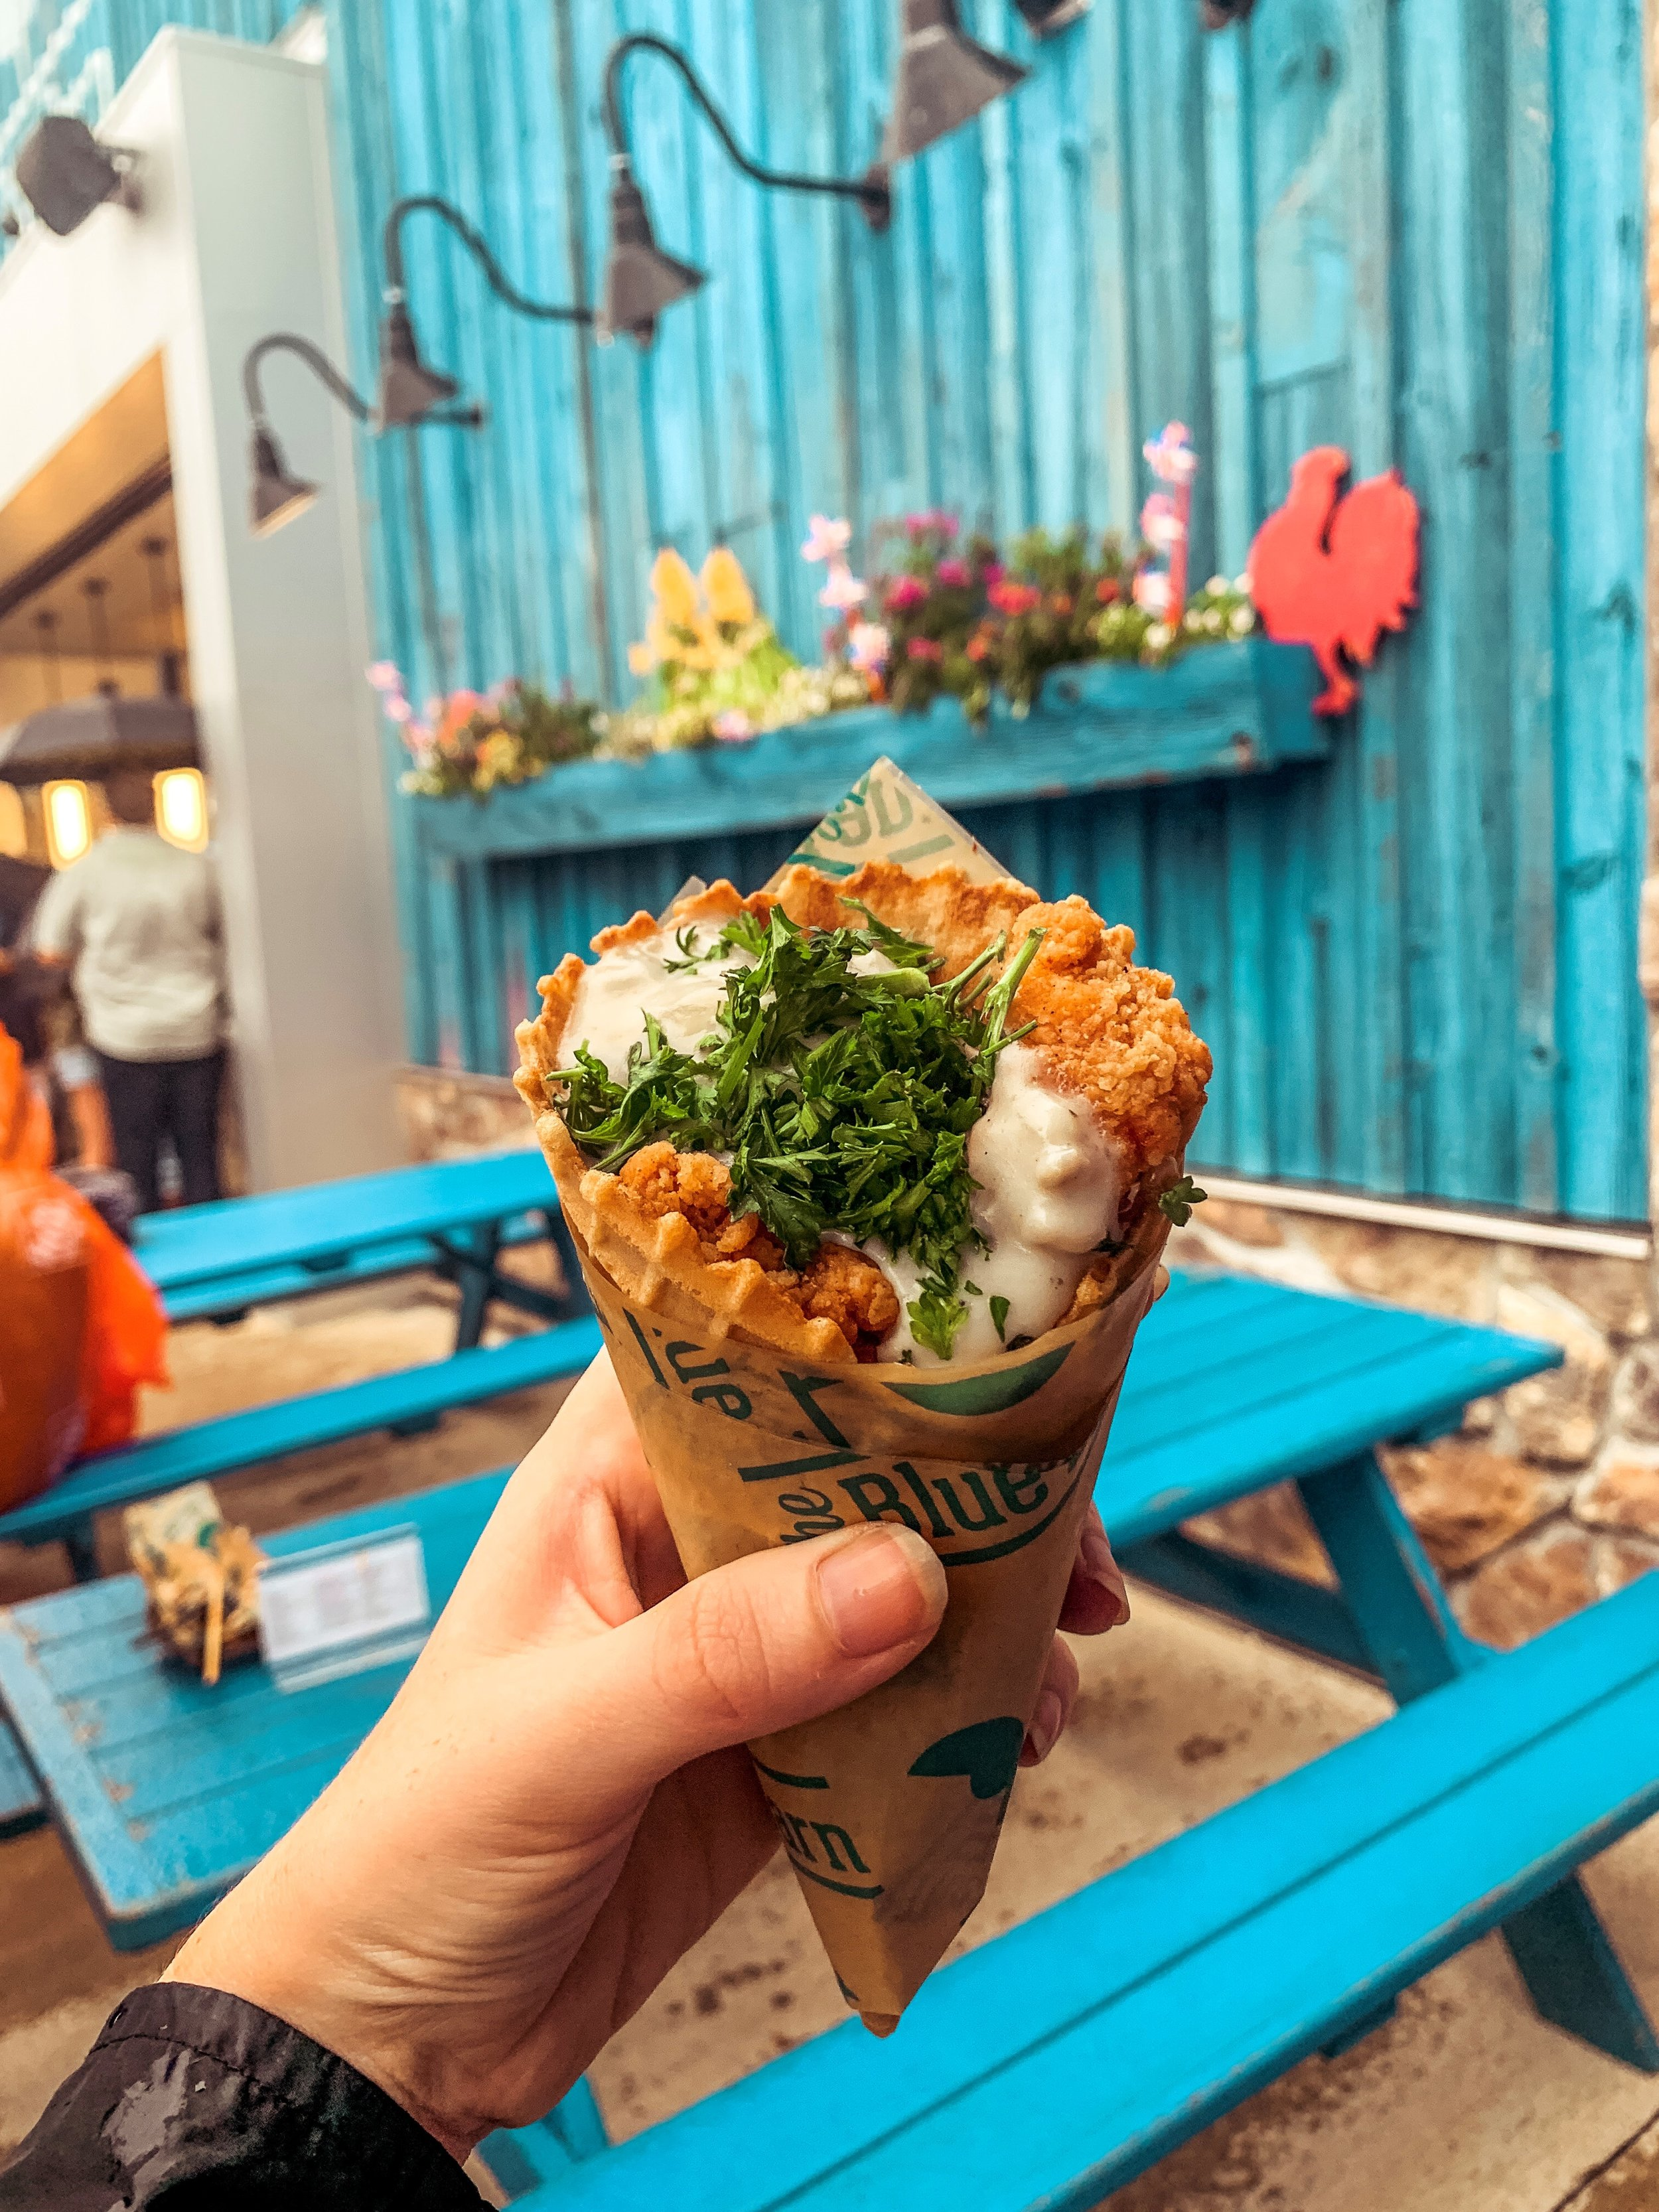 Chicken and Gravy in a Waffle Cone at Blue Barn